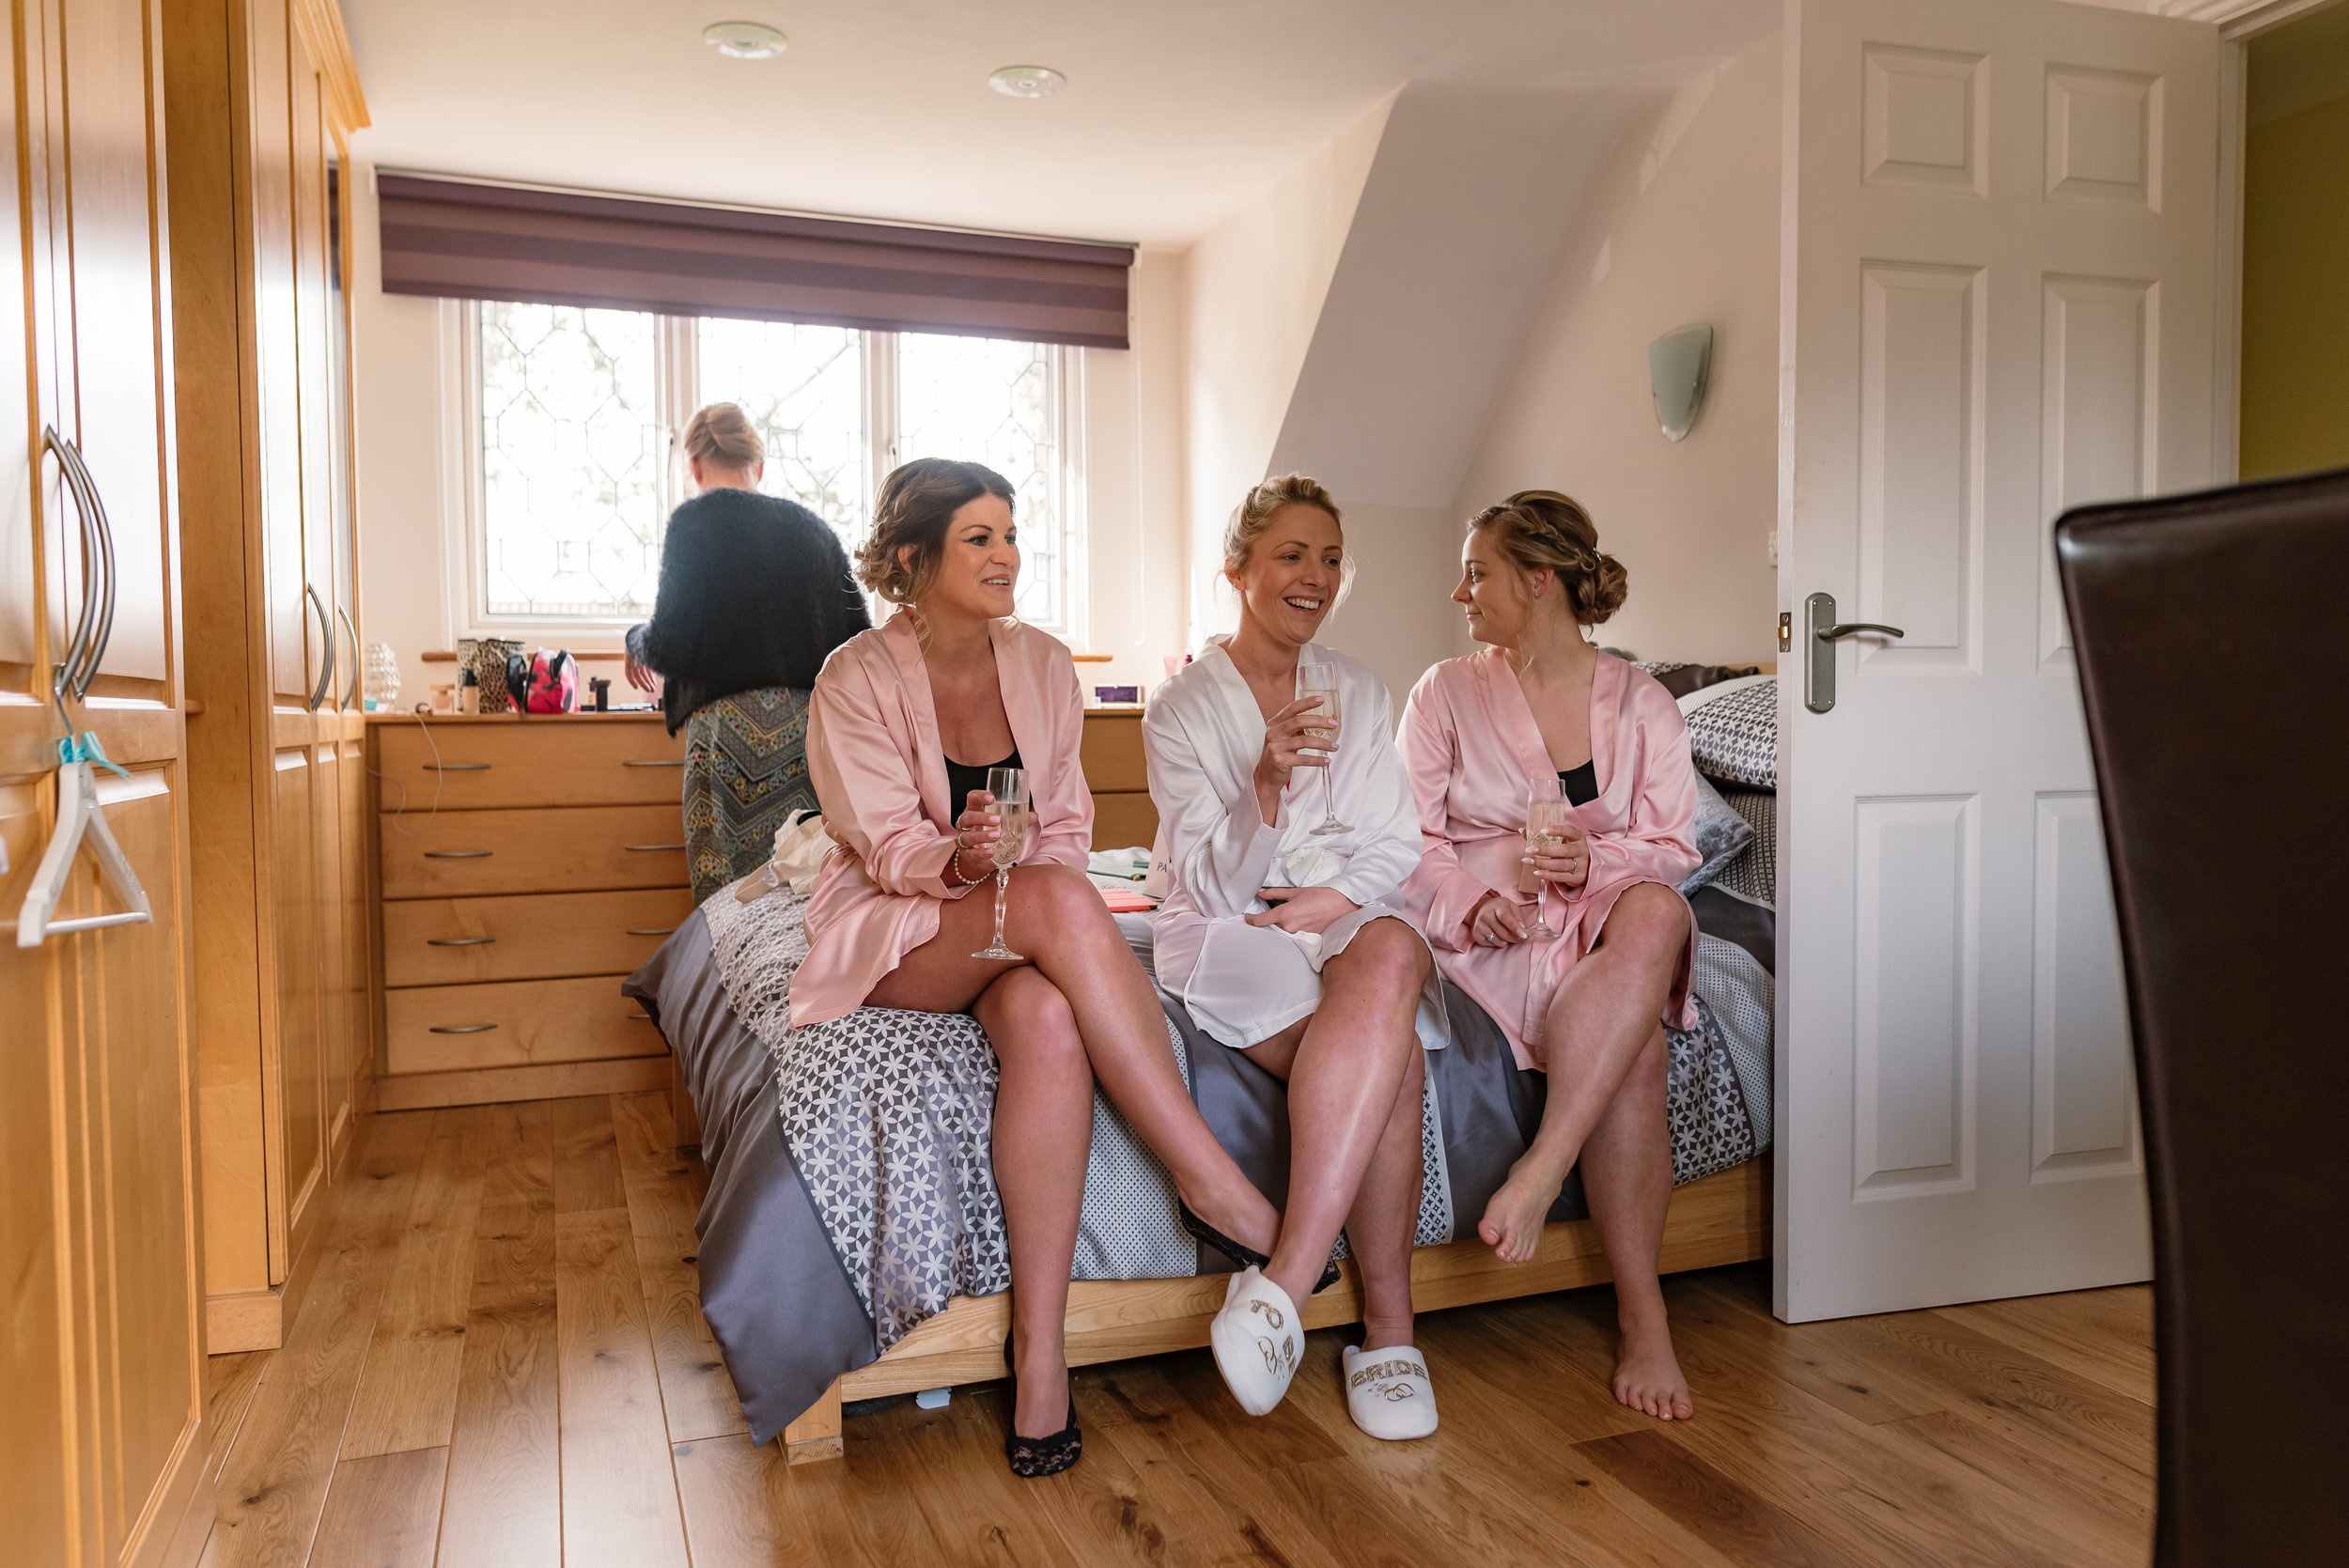 Sarah-Fishlock-Photography / Hampshire-wedding-photographer-hampshire / fleet-wedding-photographer-fleet / Hampshire-church-wedding / Hampshire-wedding-venue / Hampshire-hotel-wedding-venue /